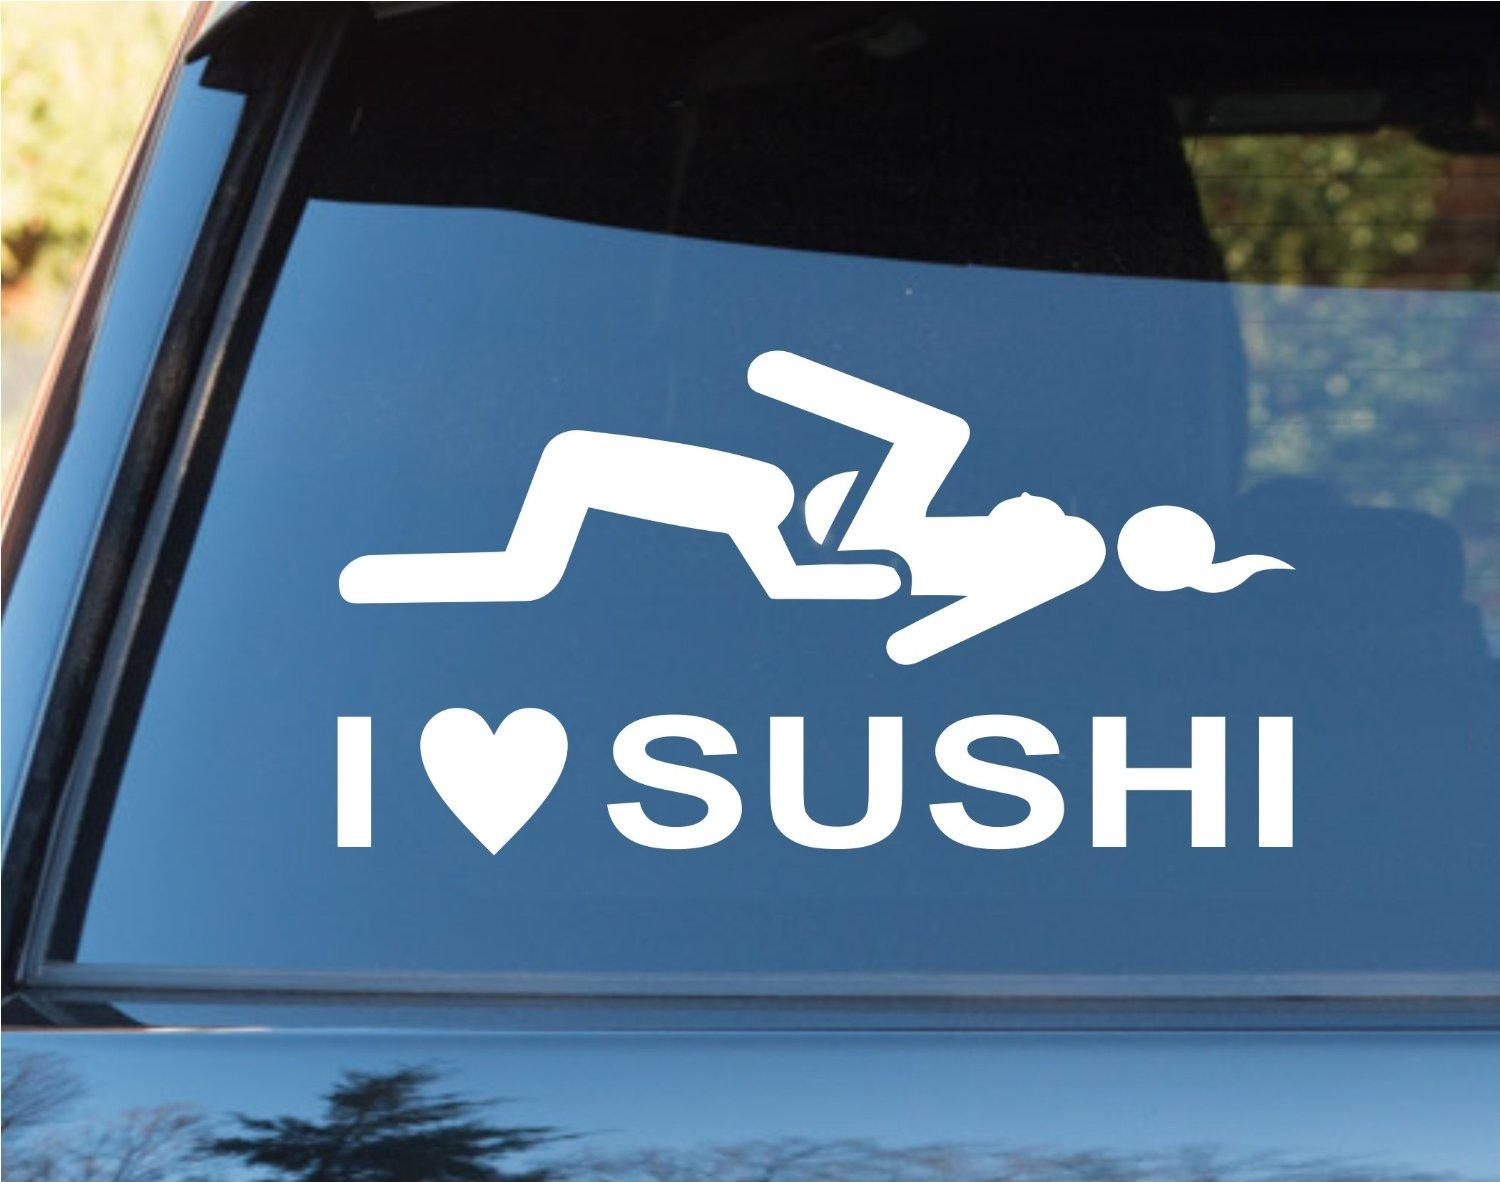 I love sushi funny car window windshield from amazon my